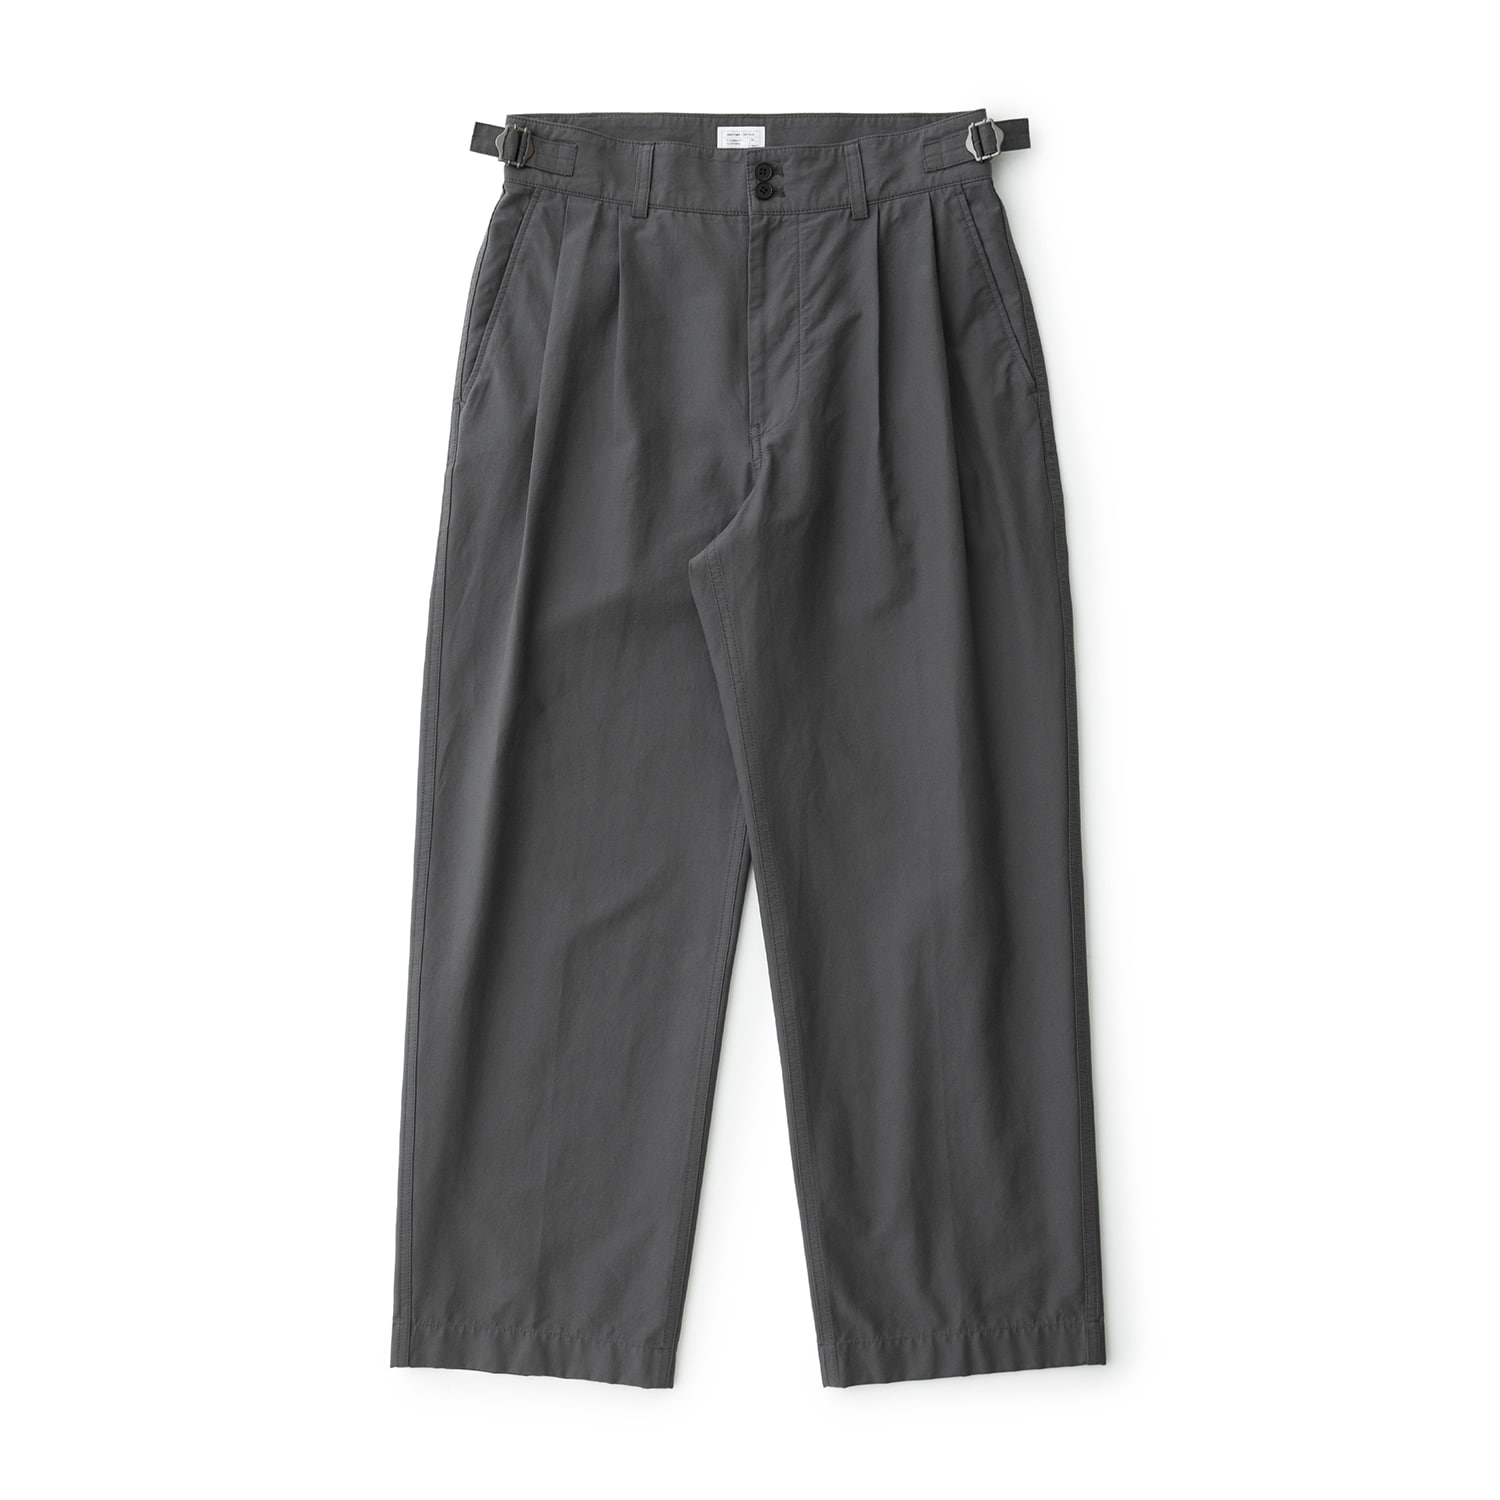 Santiago Doublecloth Pants (Carbon)